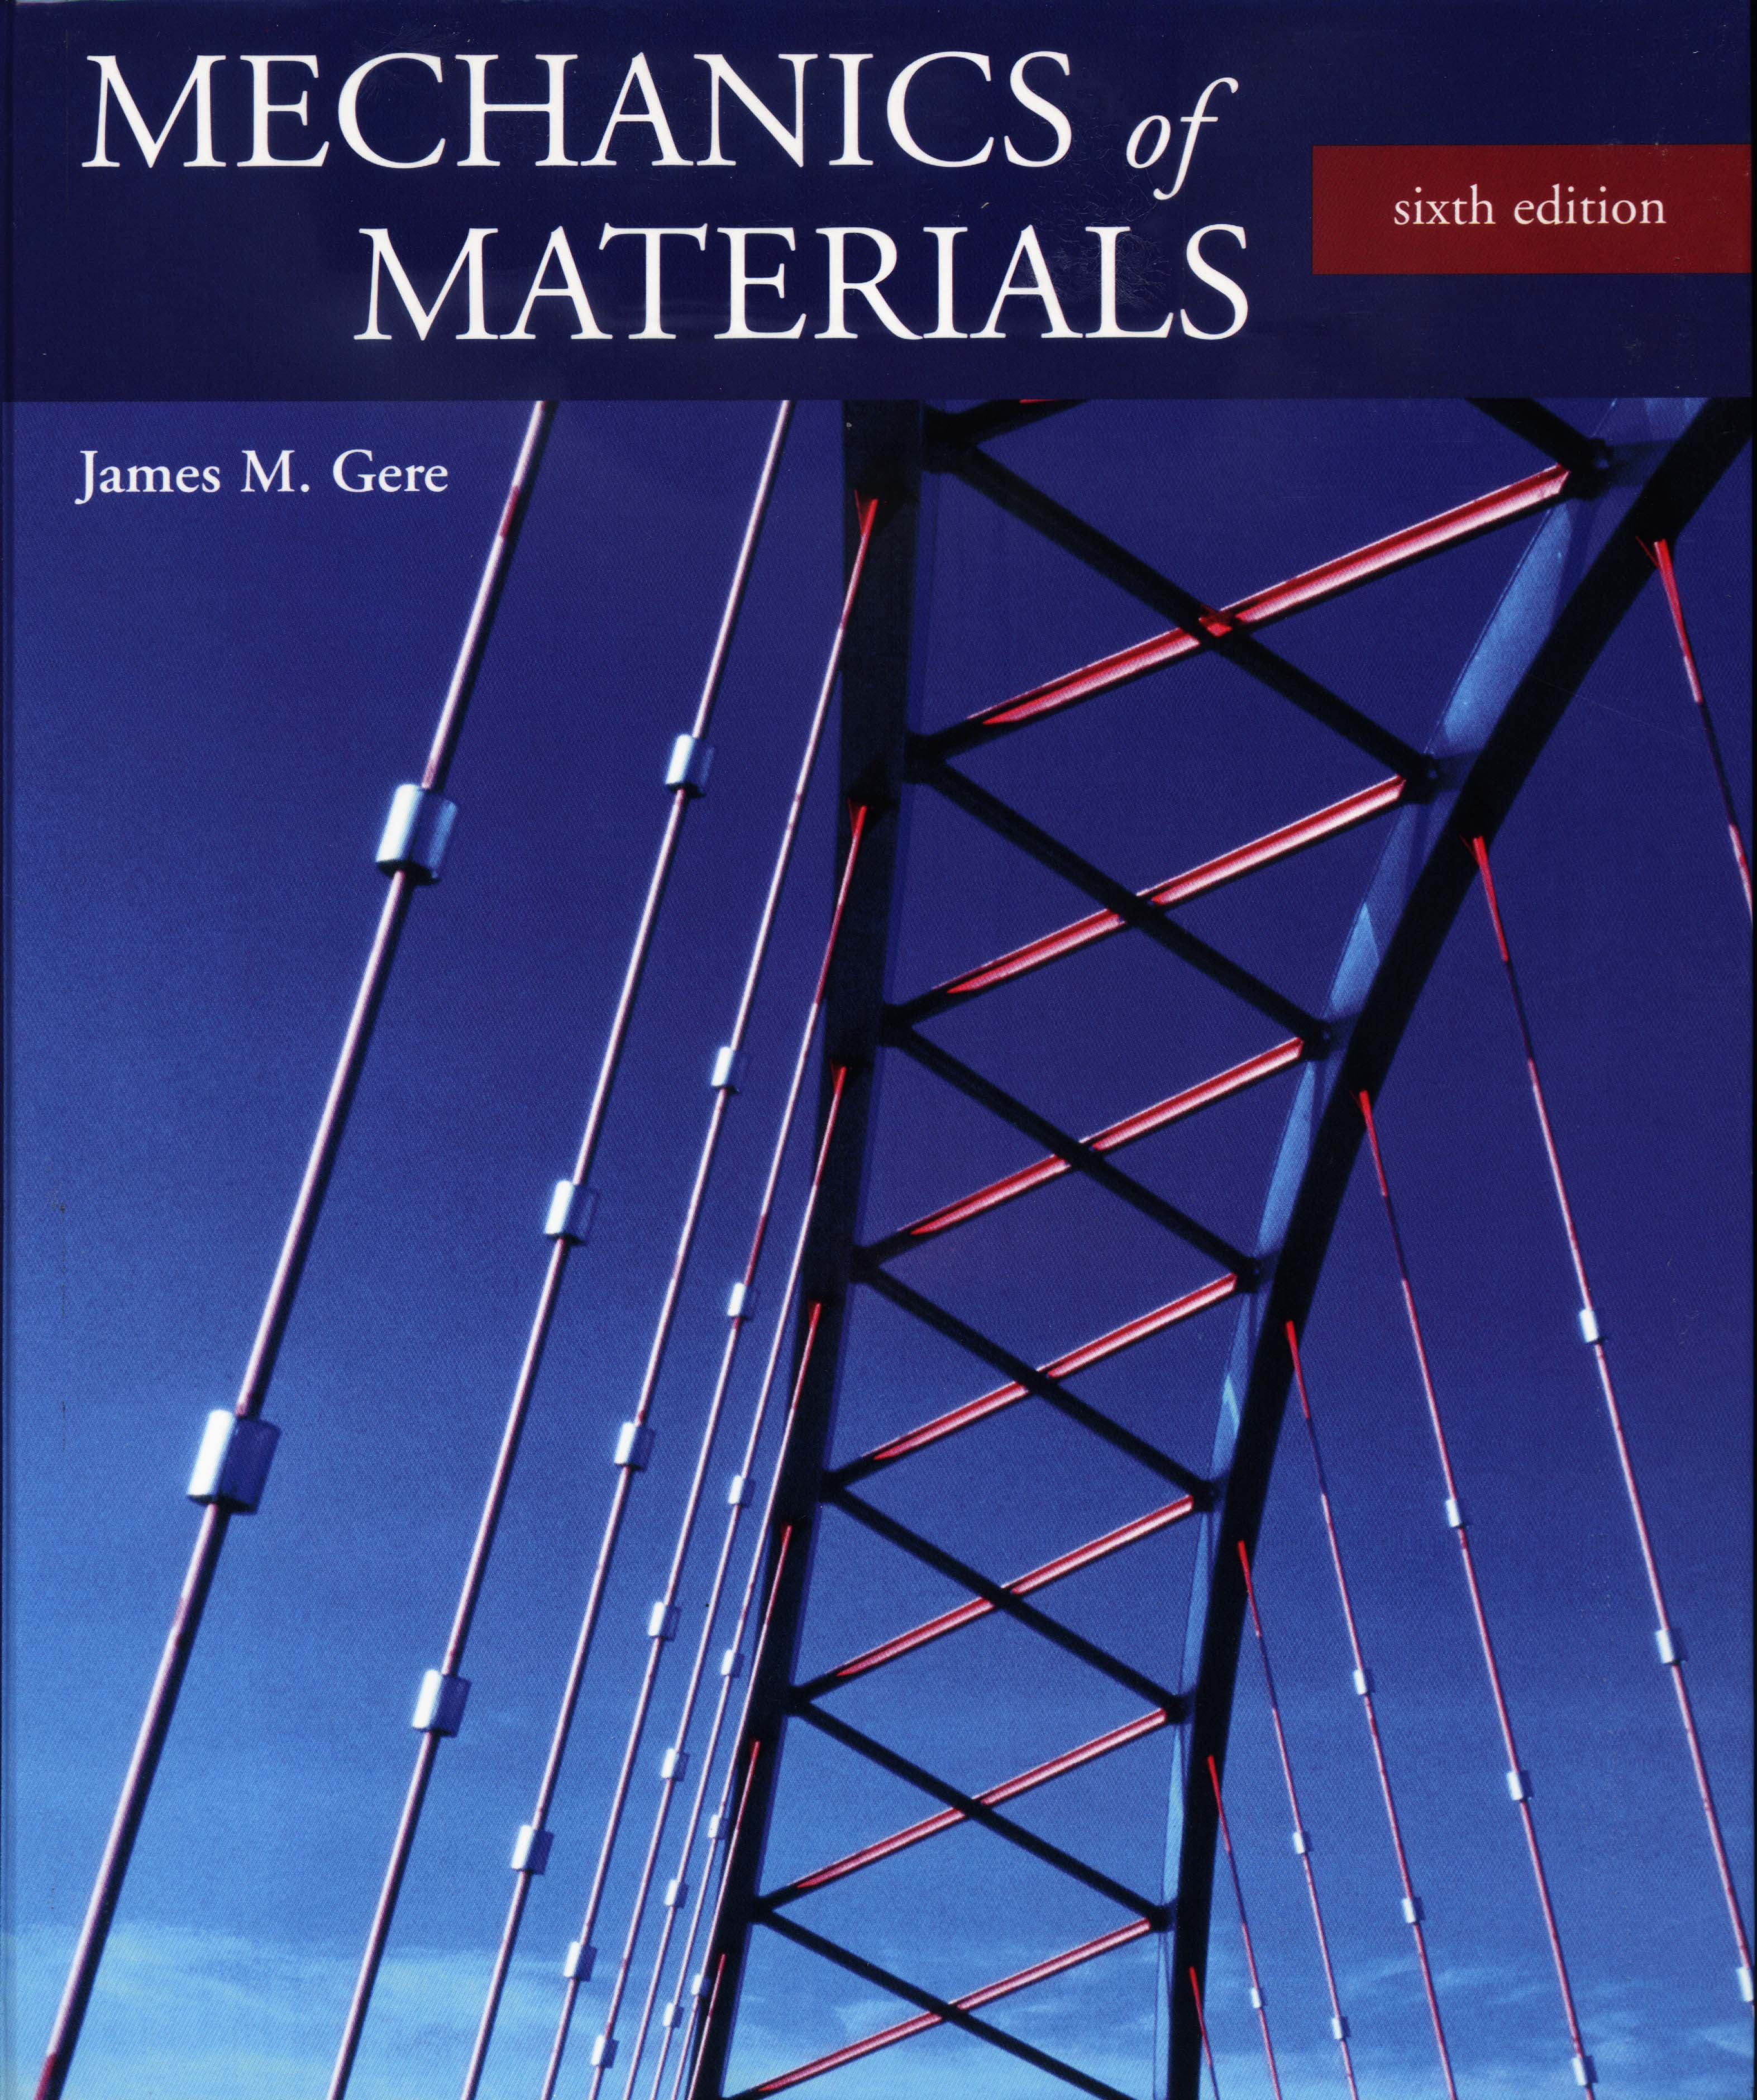 Mechanics of materials 6th edition gere solution manual pdf.